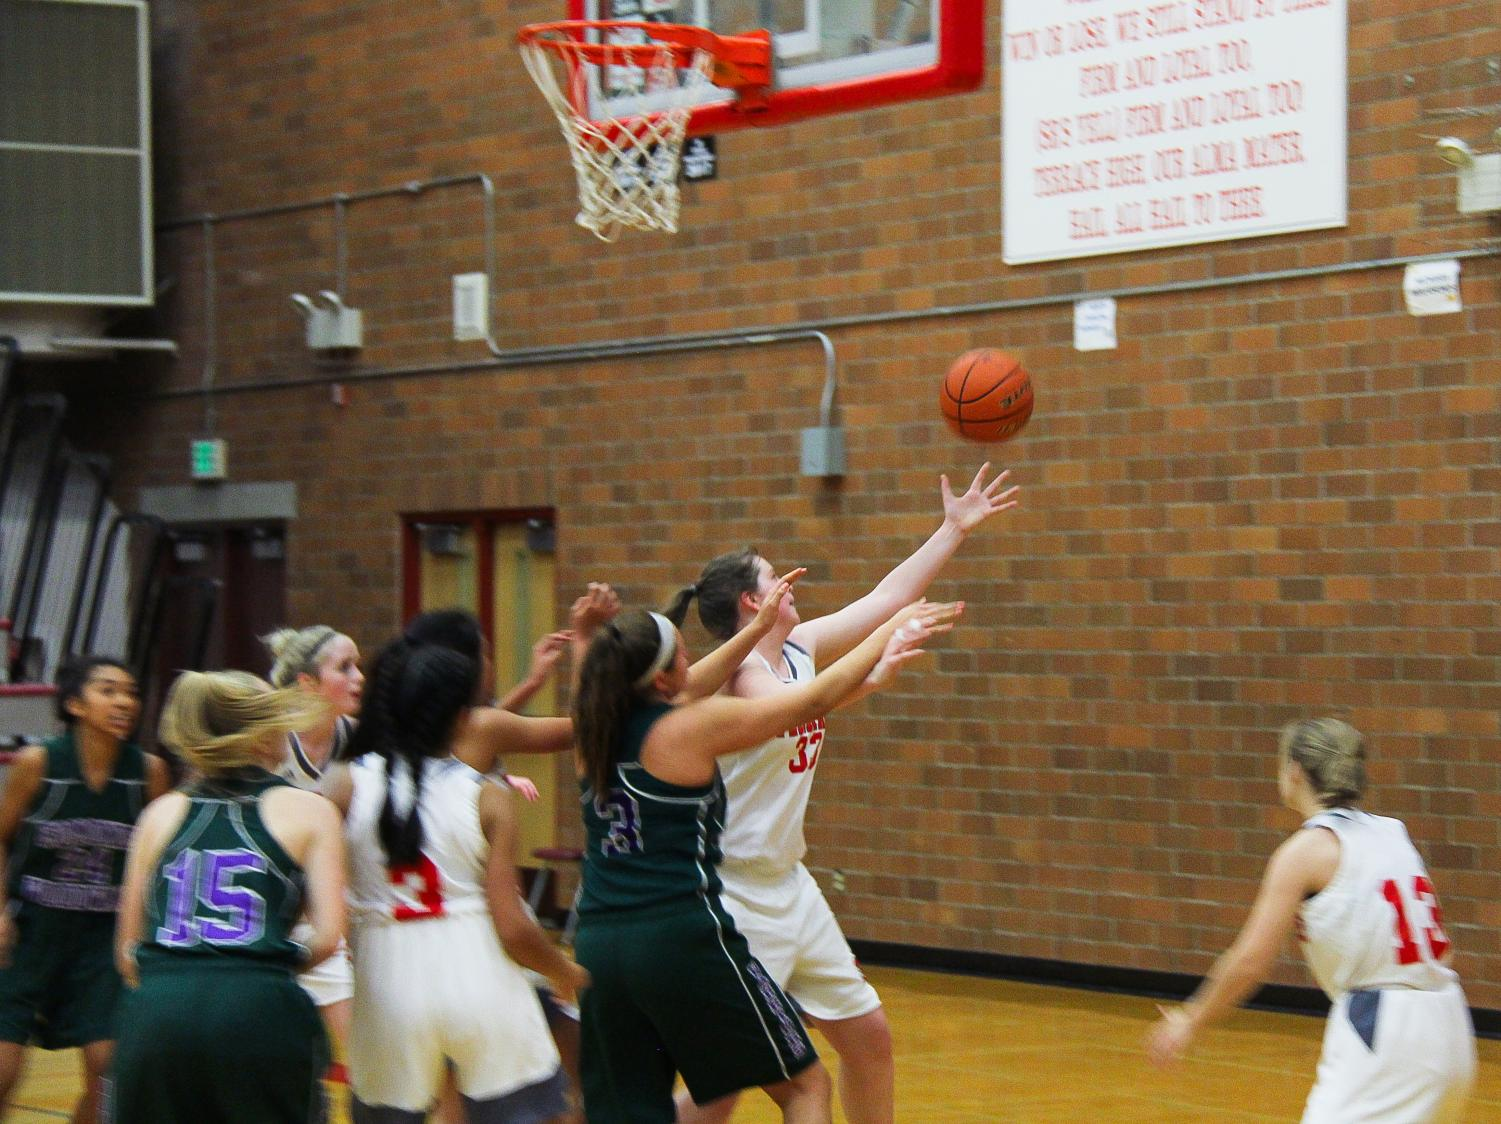 Freshmen+Isabelle+Allred+goes+for+a+rebound+in+the+paint+versus+a+Woodway+player